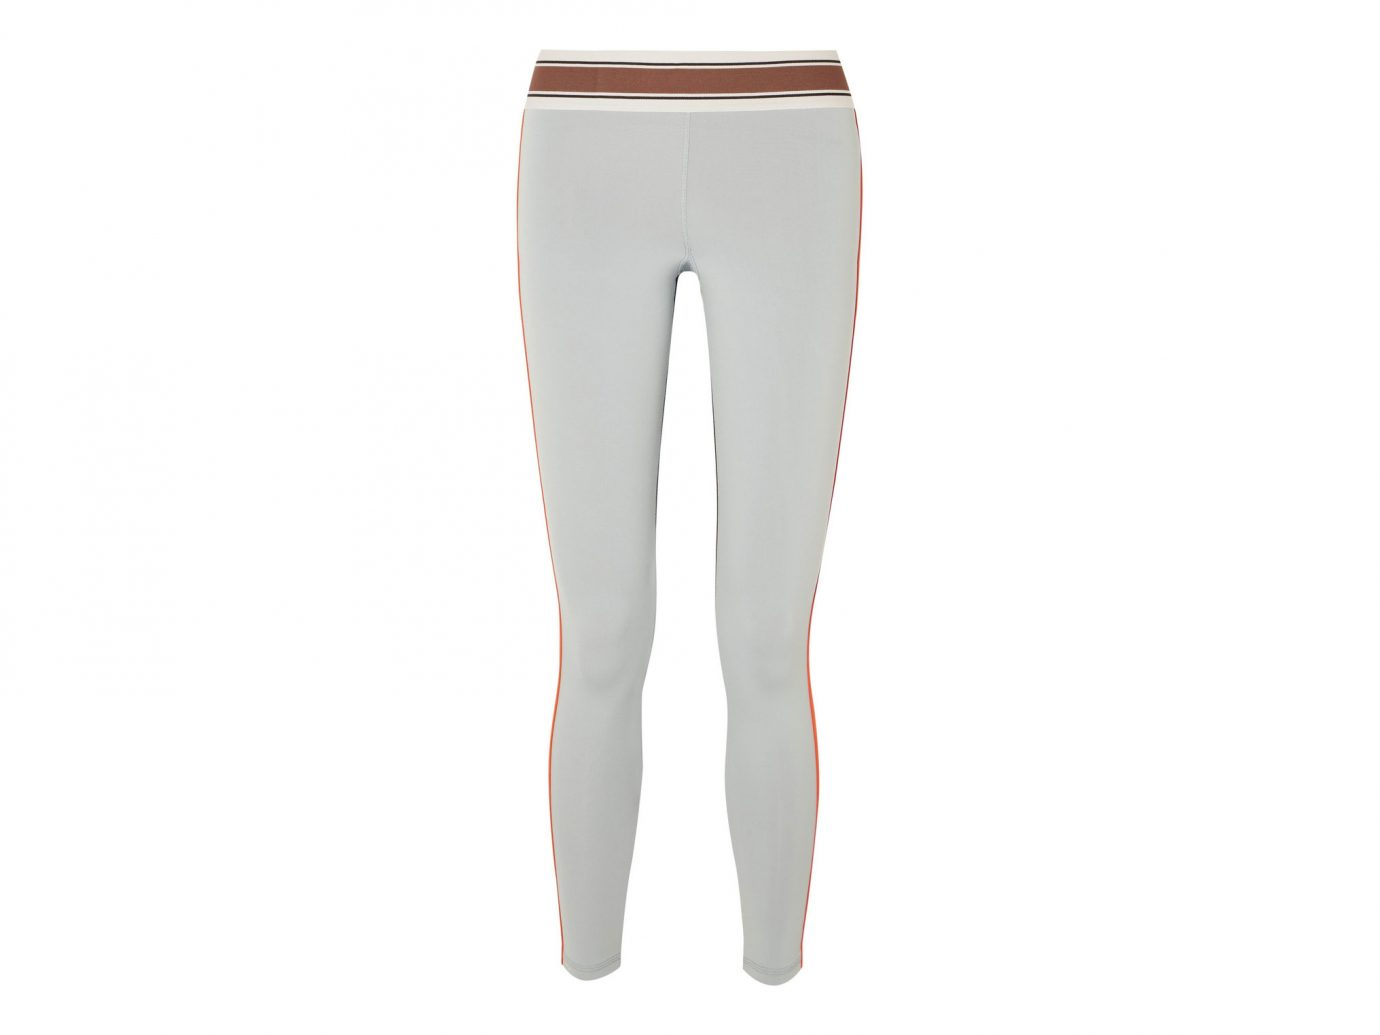 Olympia Activewear Pria paneled stretch leggings